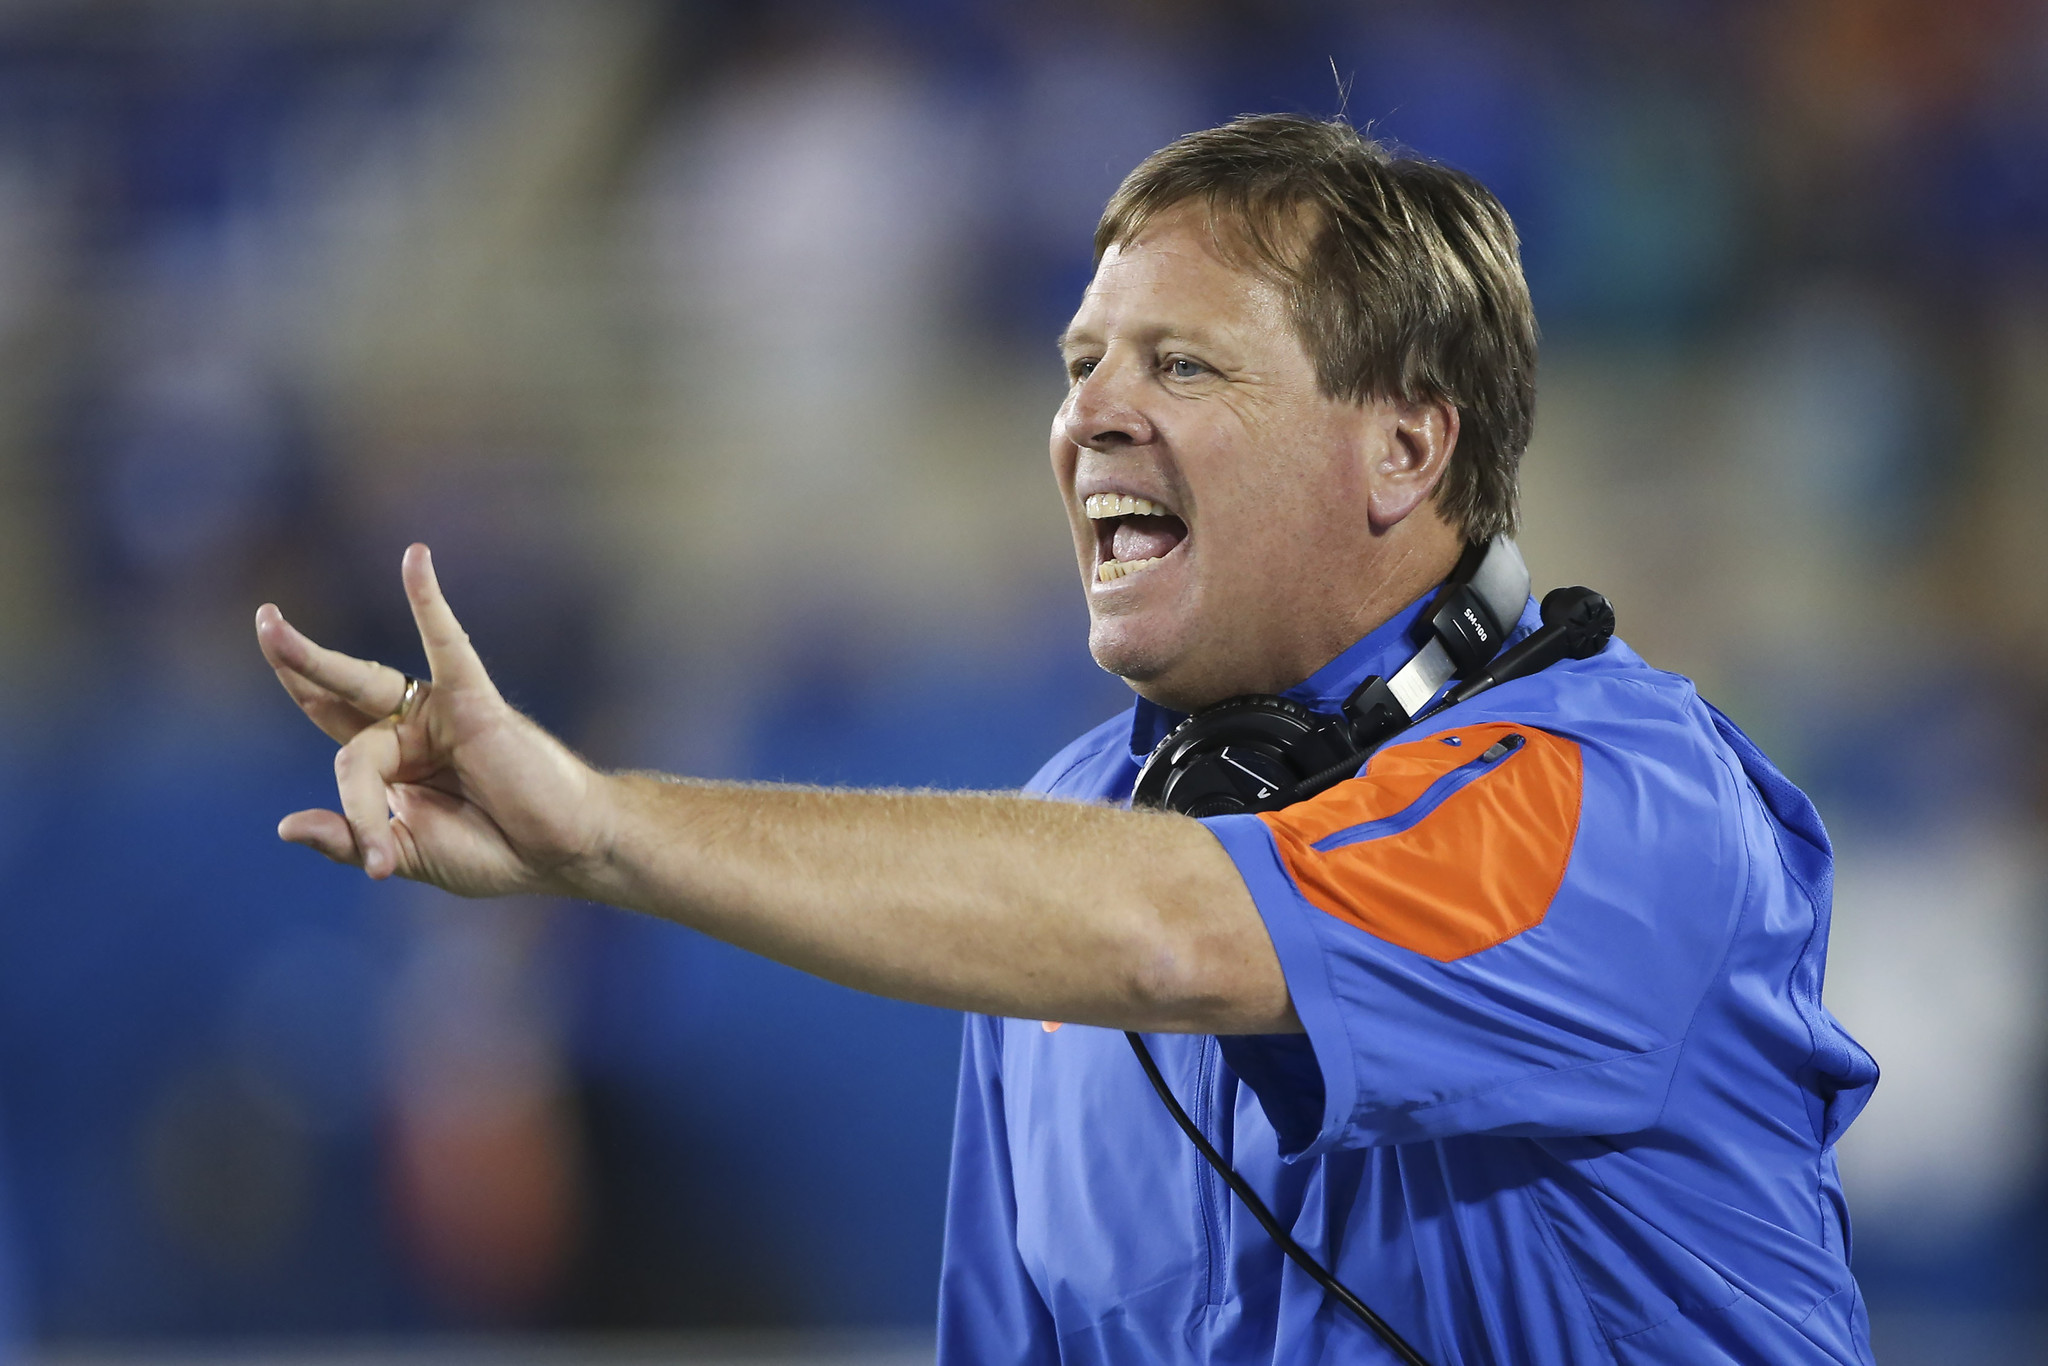 Os-mcelwain-pace-outstanding-gators-practice-20160804